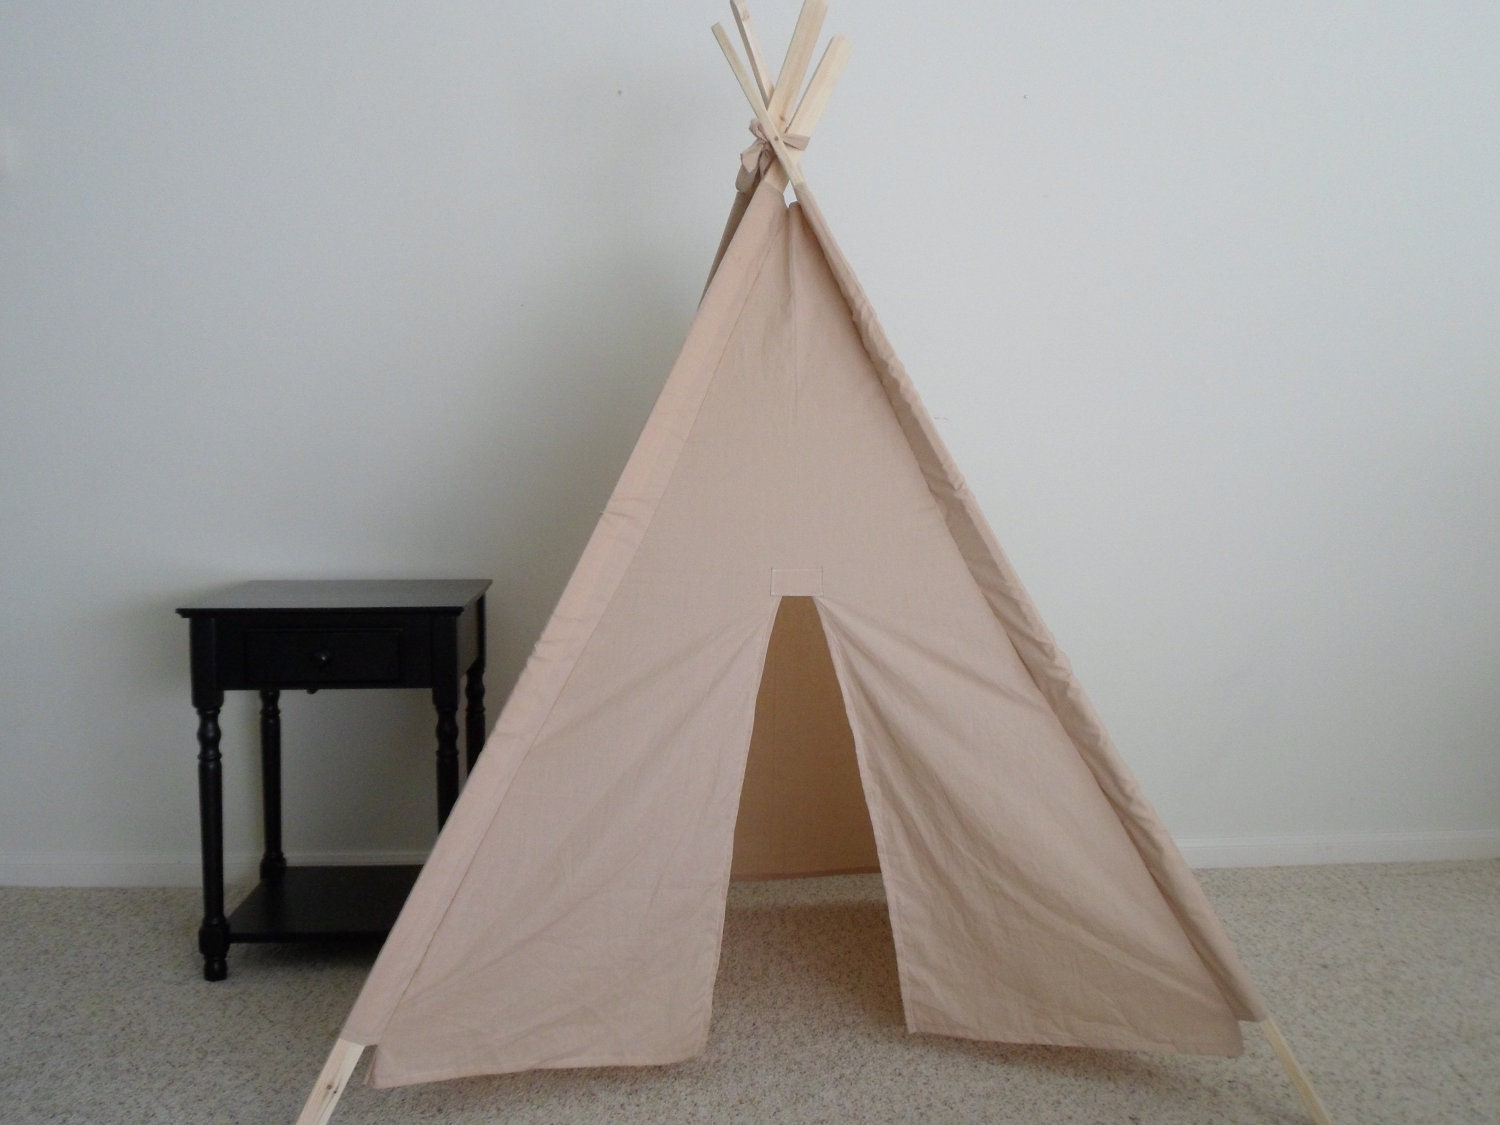 Tea Dyed Muslin Teepee Made to Order  Kids Teepees  Tent  Teepee  Play & Kids Teepee play tent play fort natural cotton childrens